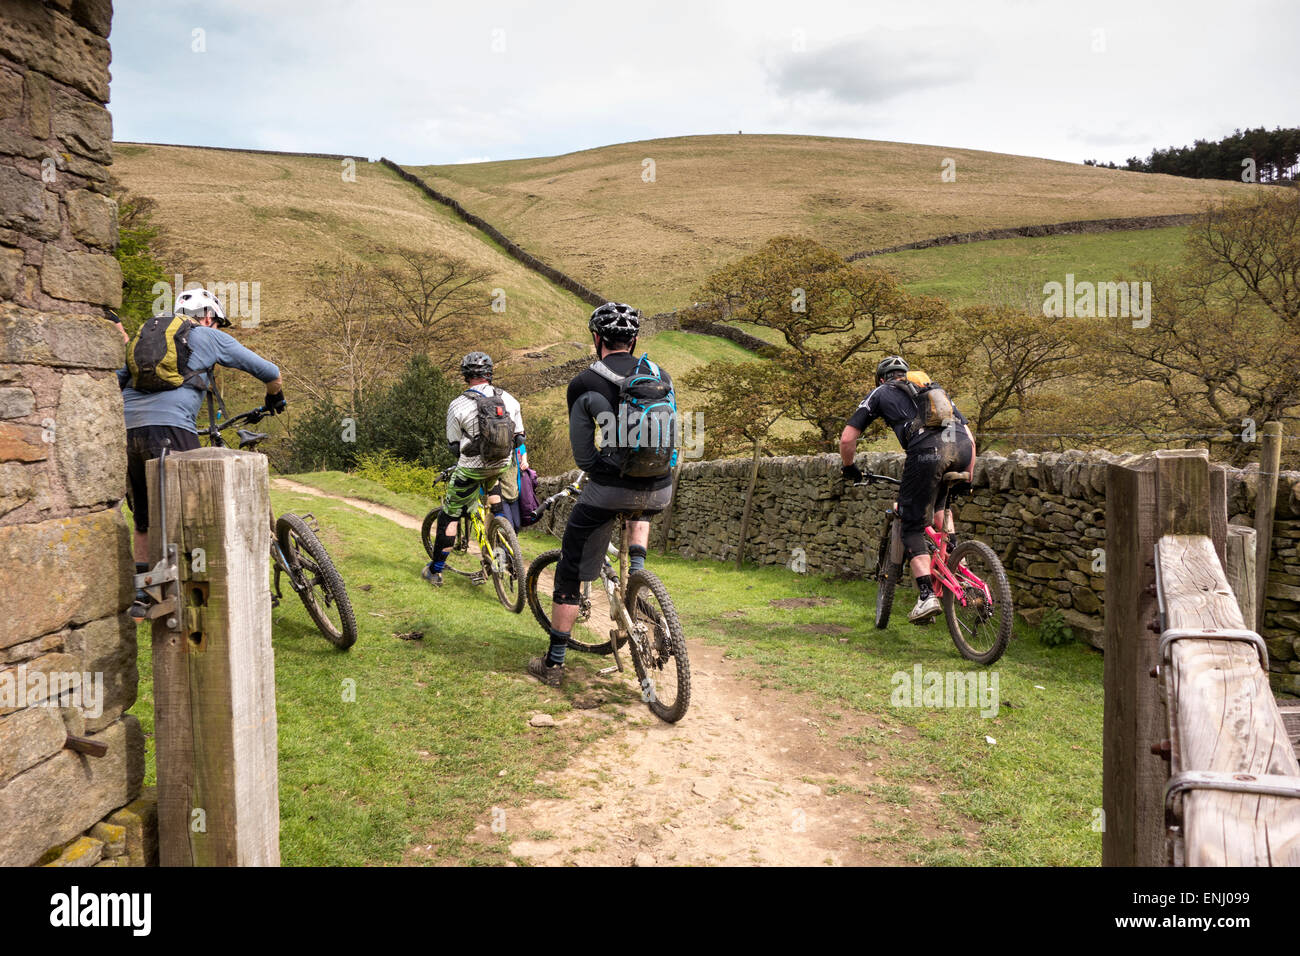 Four mountain bikers having a rest before they continue along the trail in the Derwent Valley in the Peak District - Stock Image